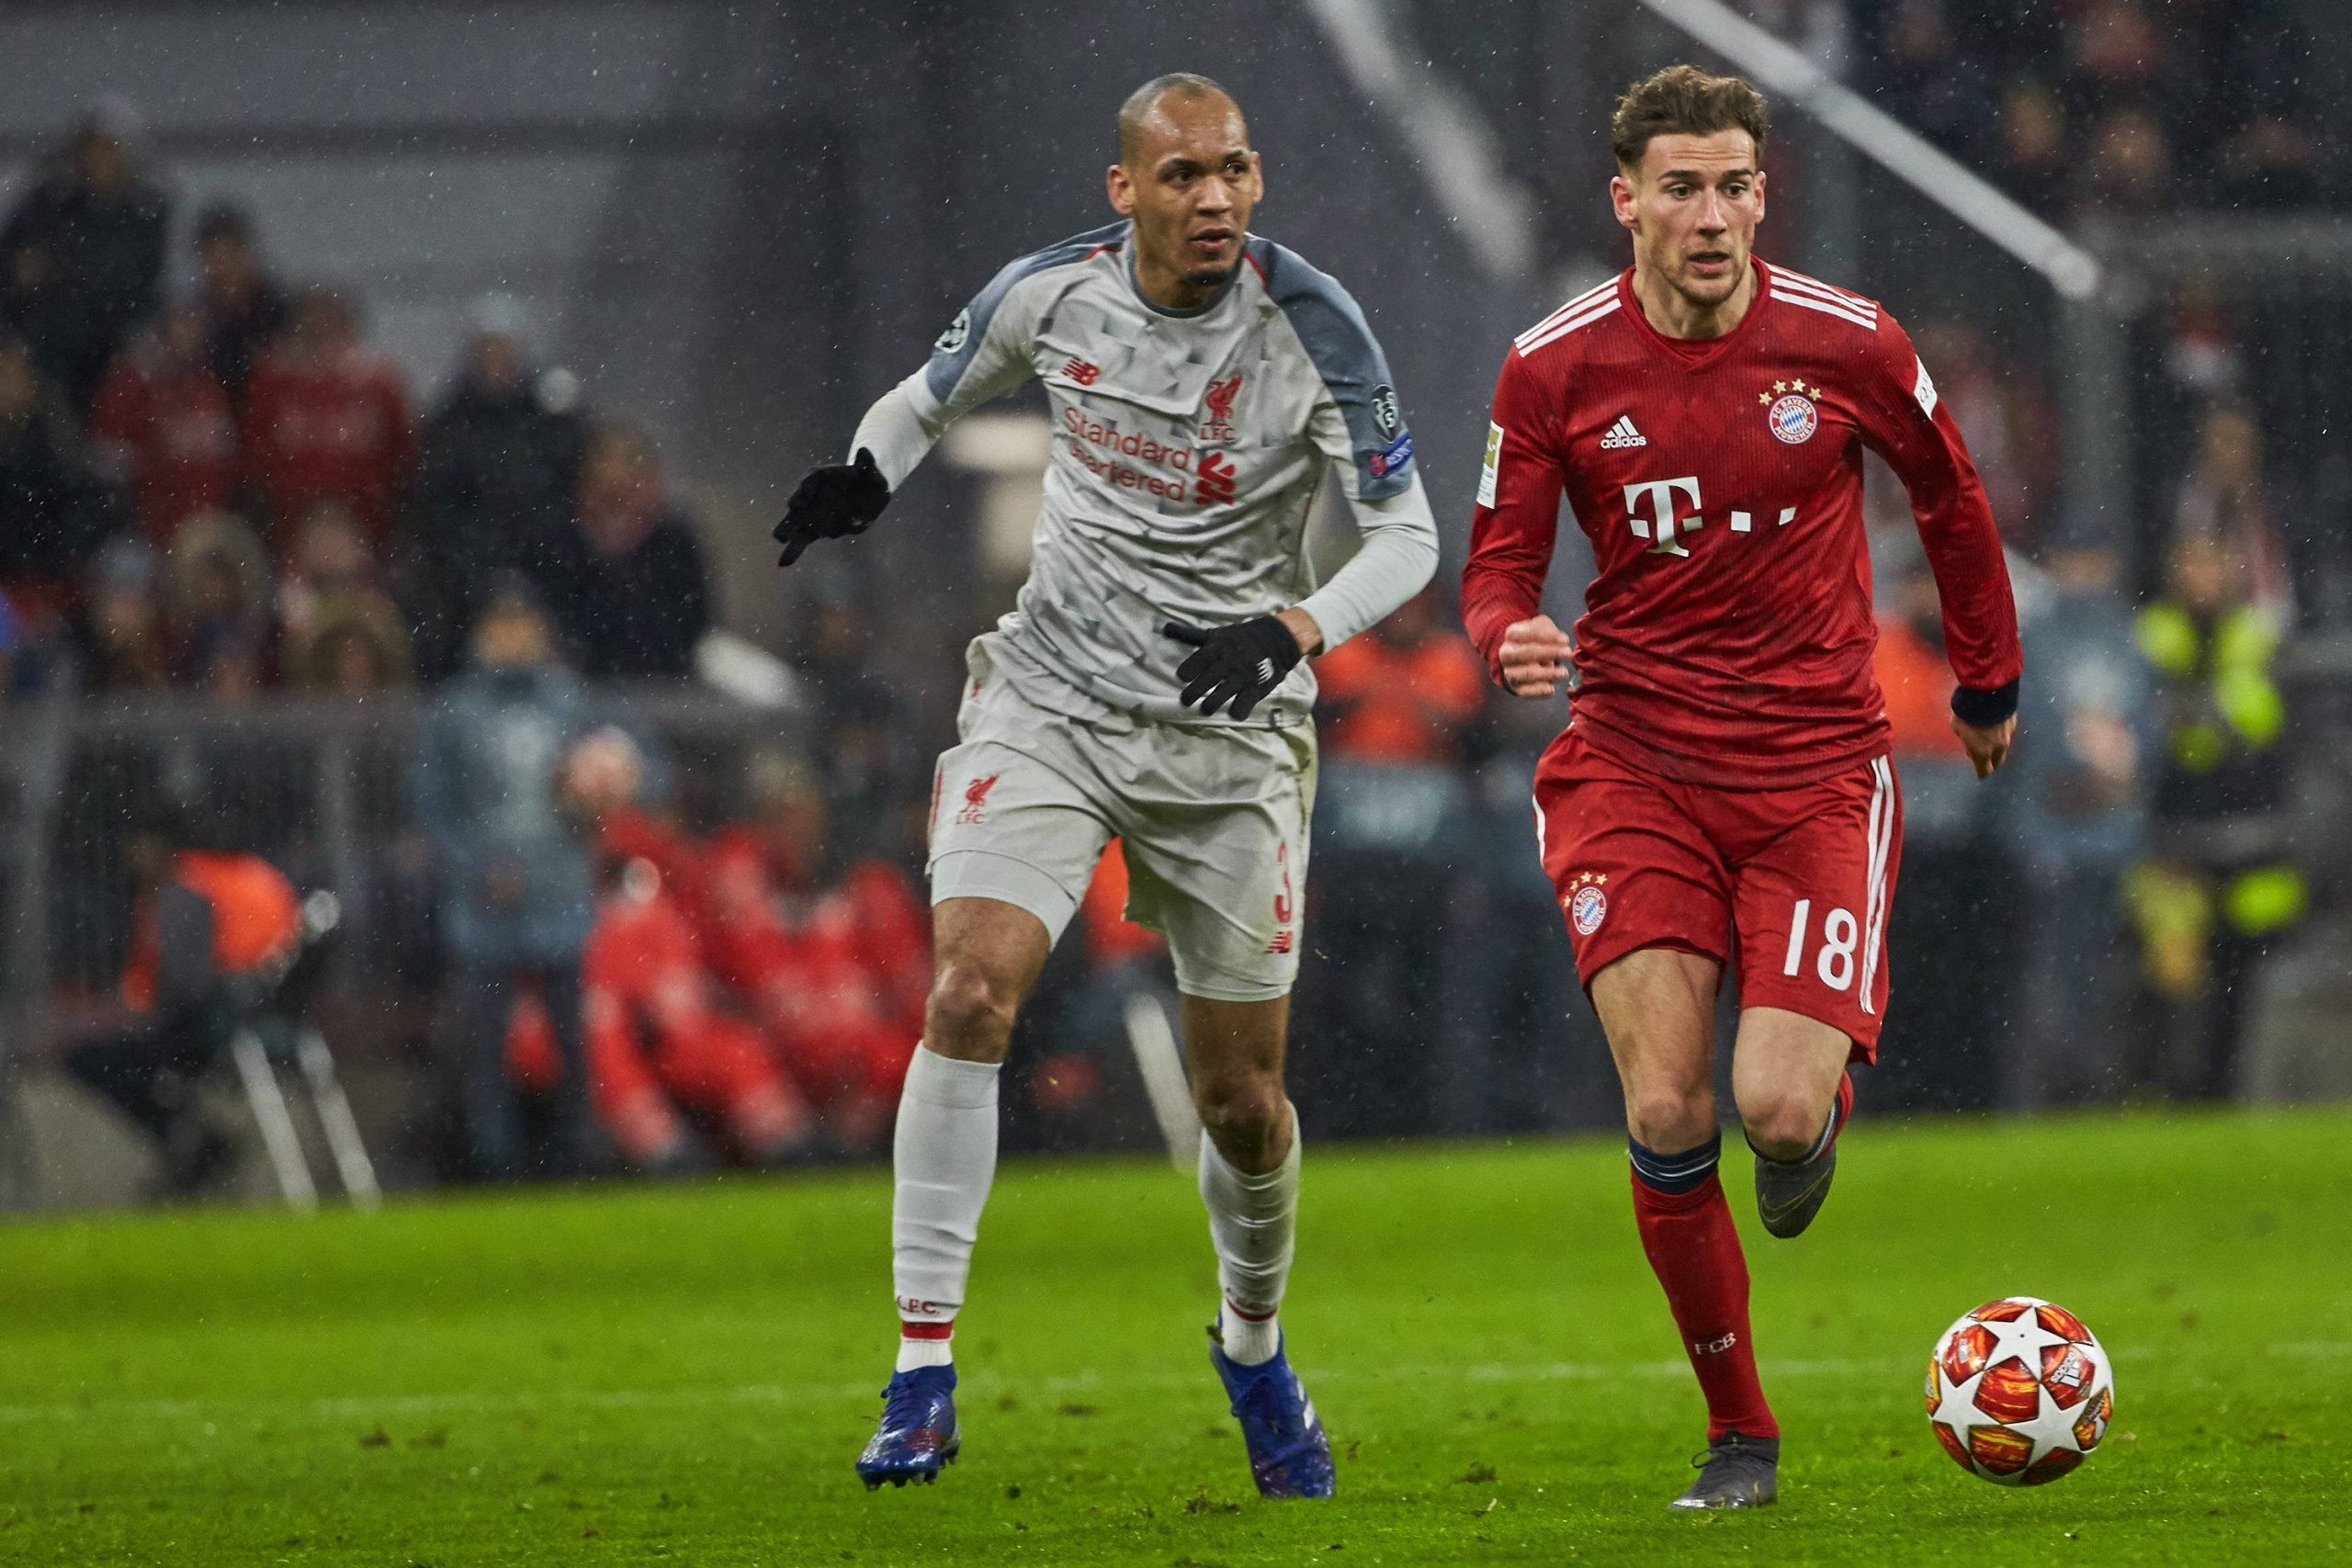 Leon Goretzka was present in the Bayern Munich team that lost 2-1 to Liverpool at the Allianz Arena in the 2018/19 UEFA Champions League season. (imago Images)